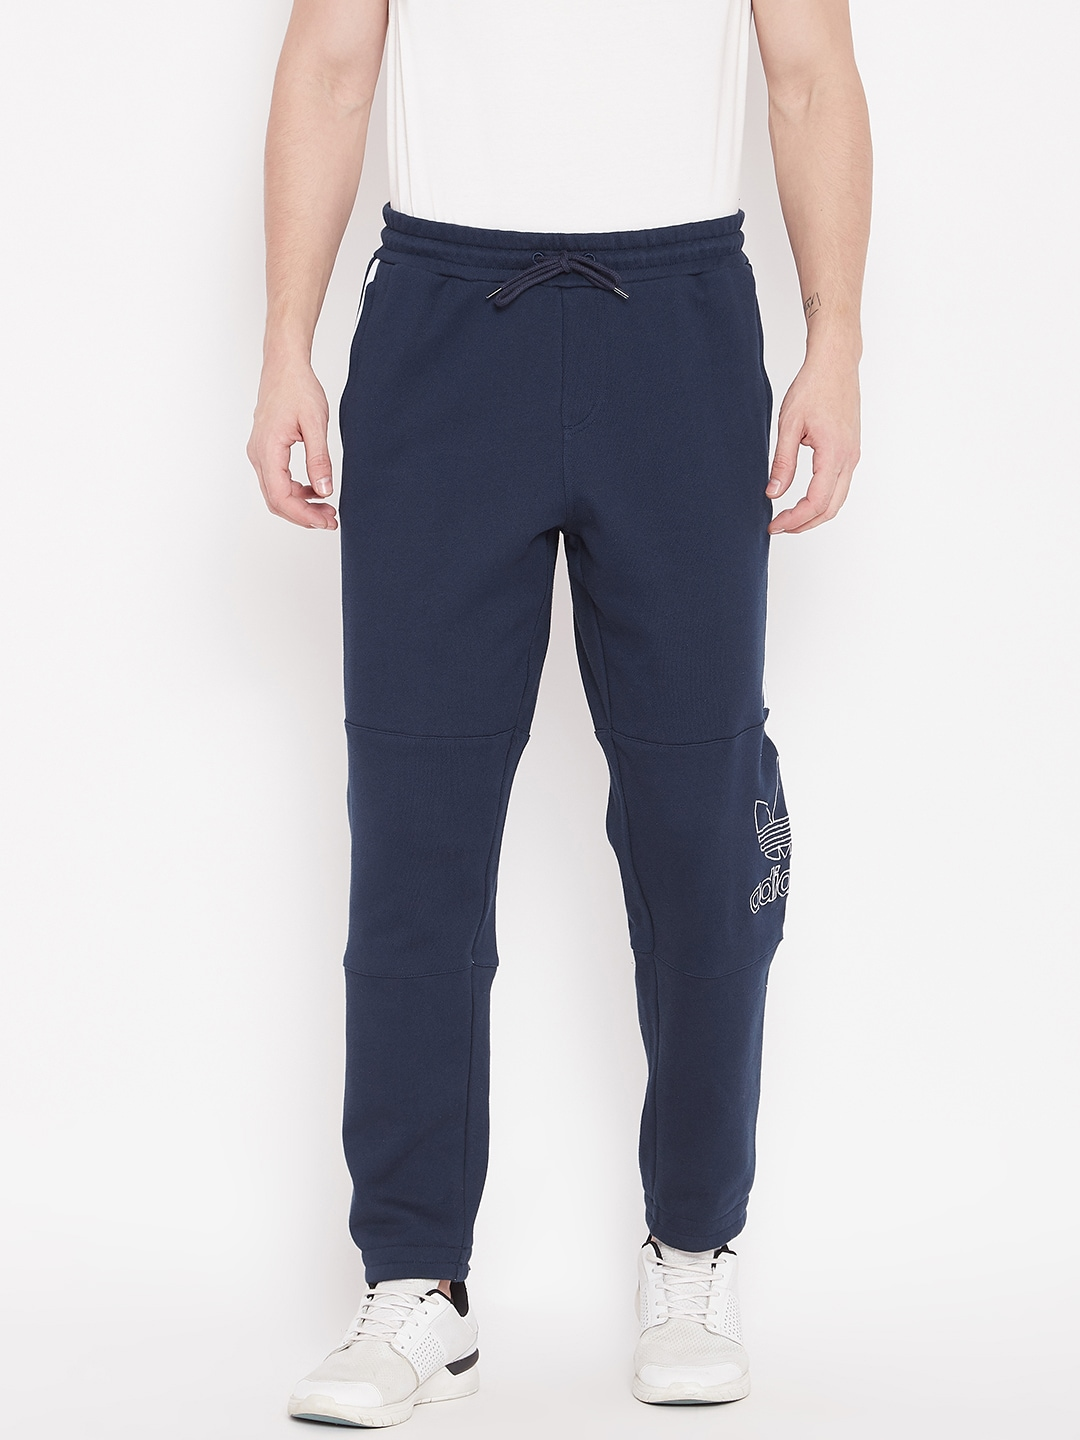 1fd4f56a2eb5d adidas Track Pants - Buy Track Pants from adidas Online